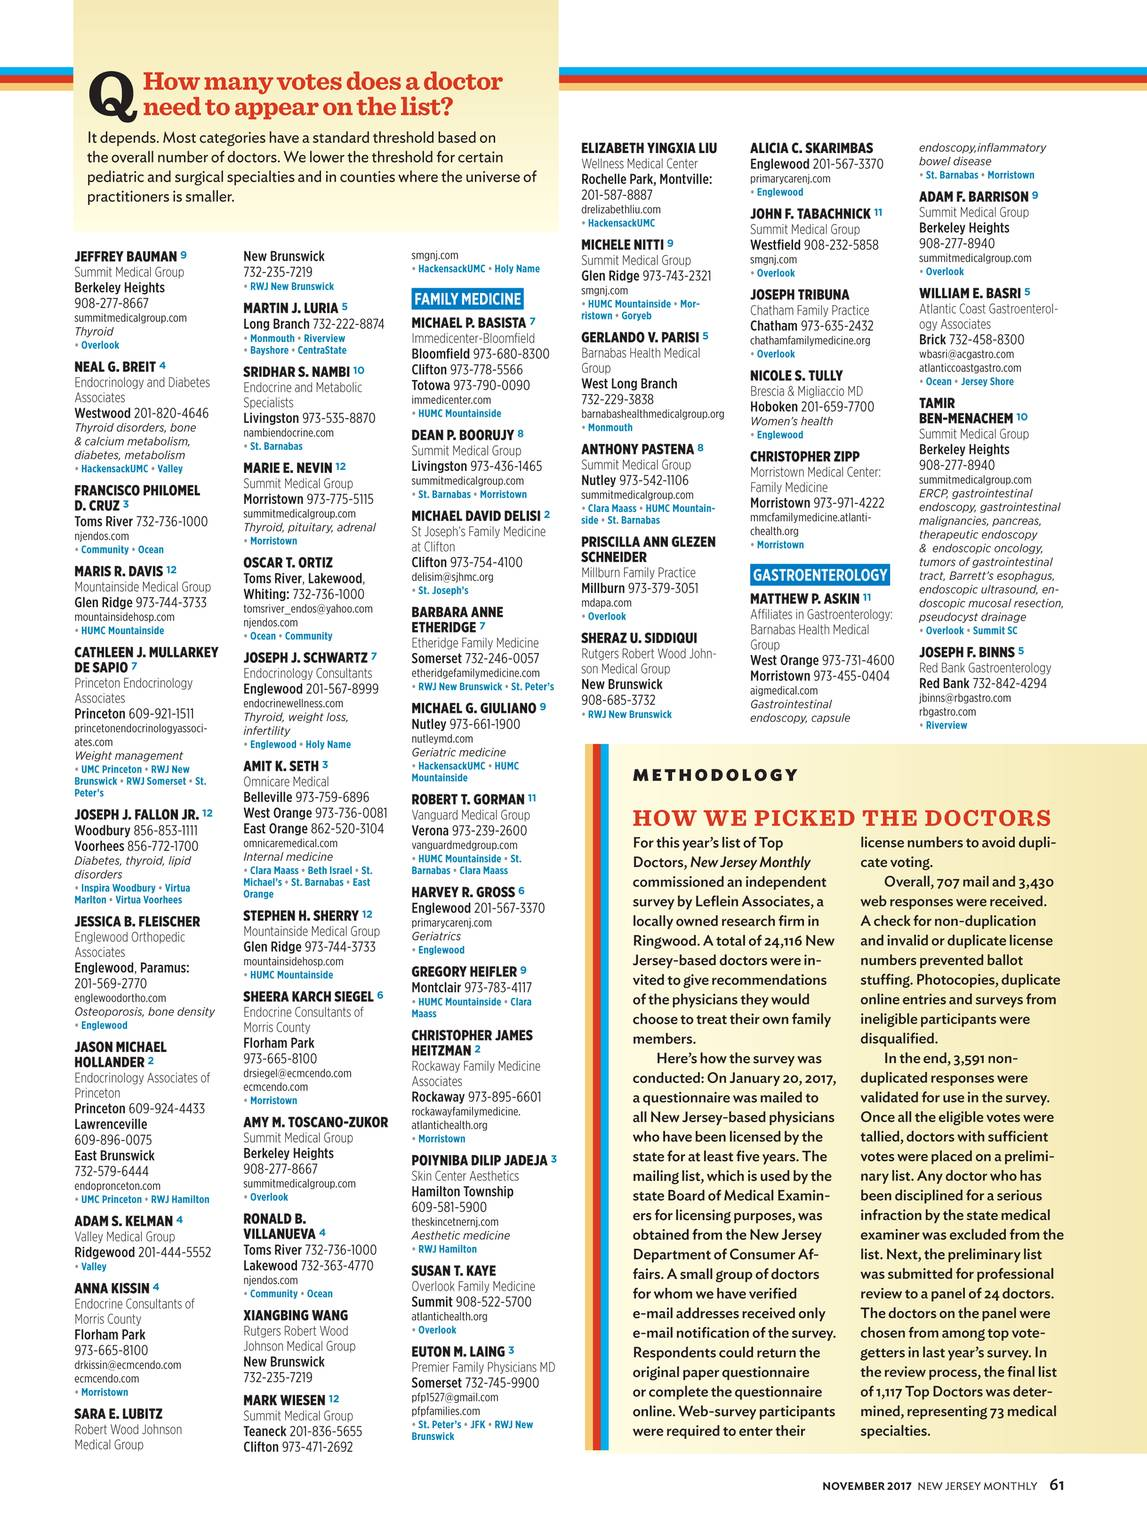 NJ Monthly - November 2017 - page 62